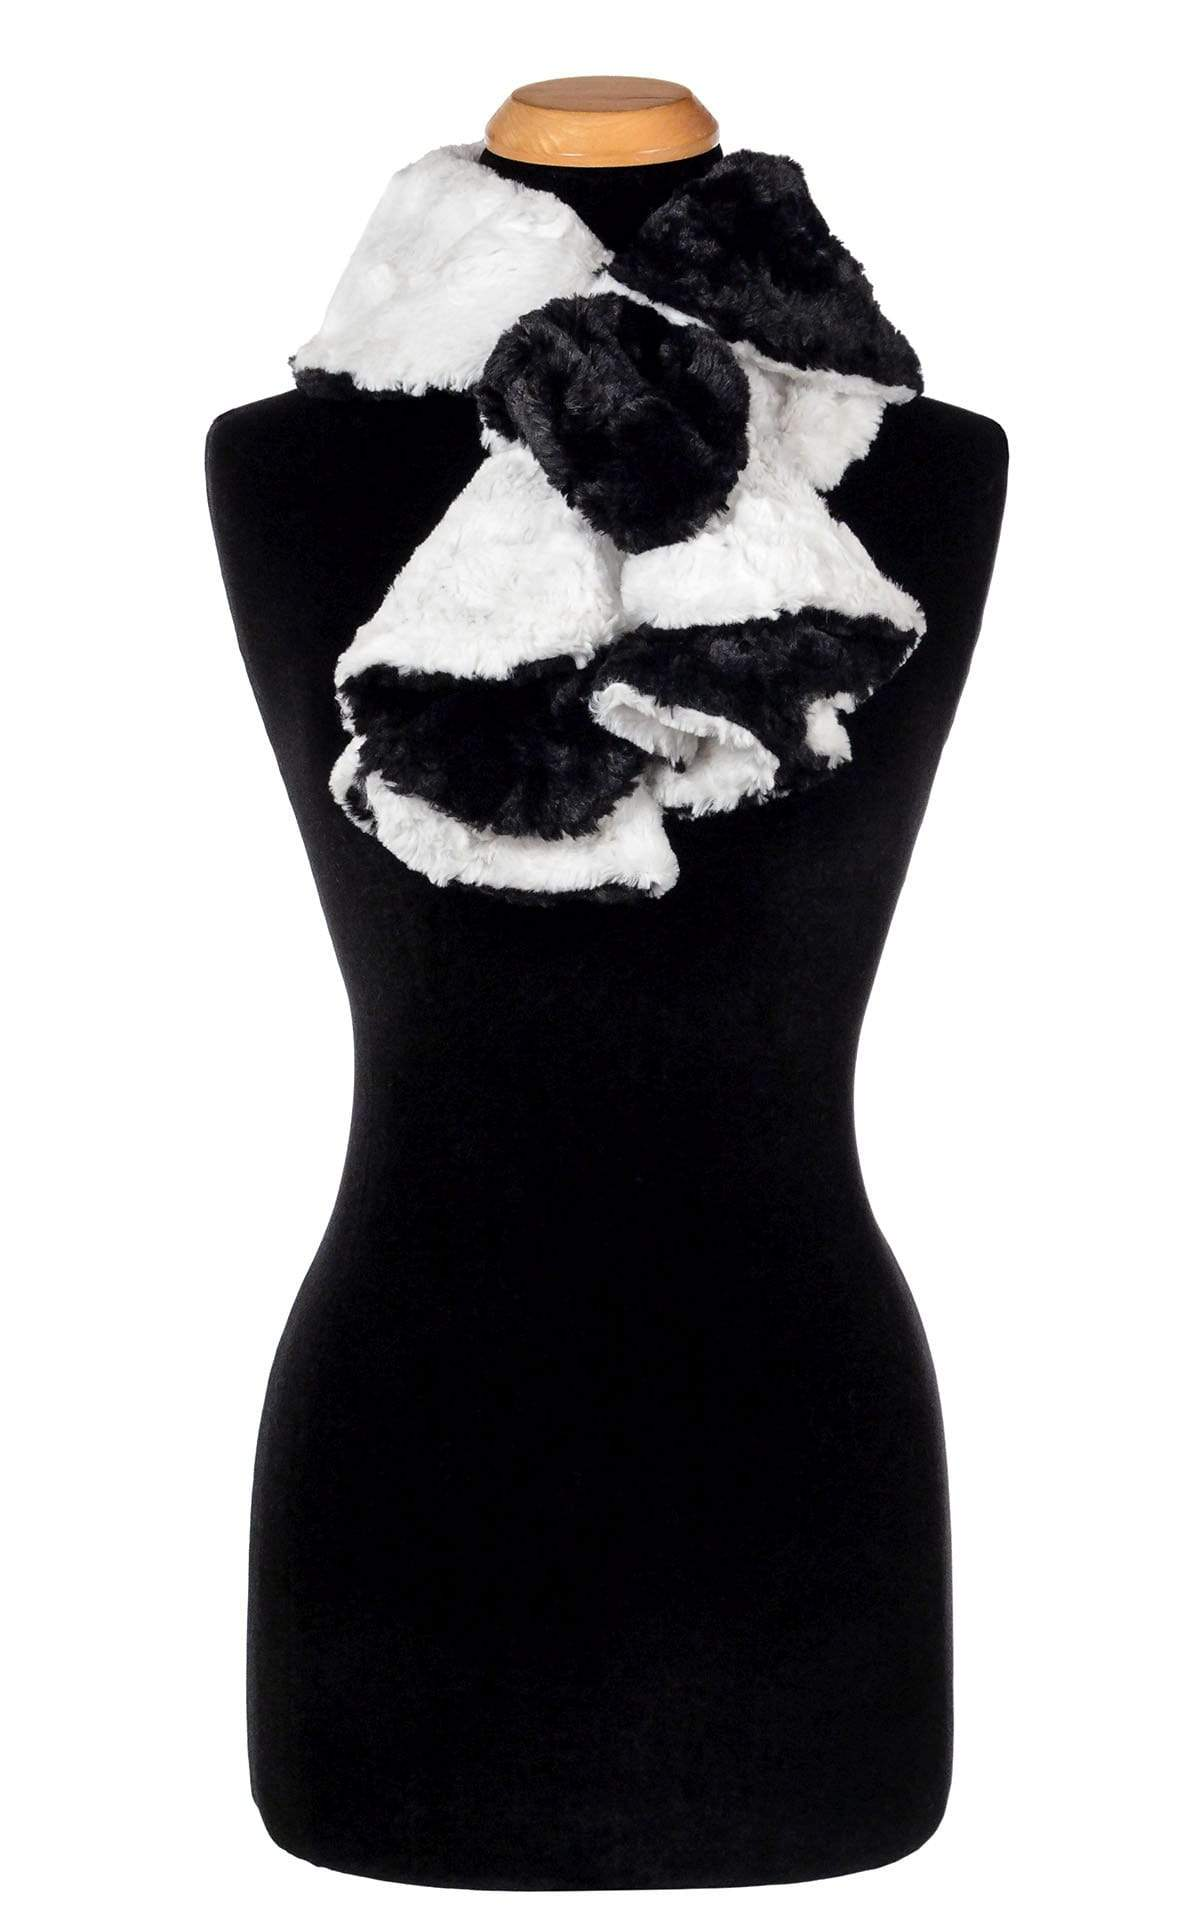 Cascade Scarf - Two-Tone, Cuddly Faux Fur in Ivory with Cuddly Fur in Black